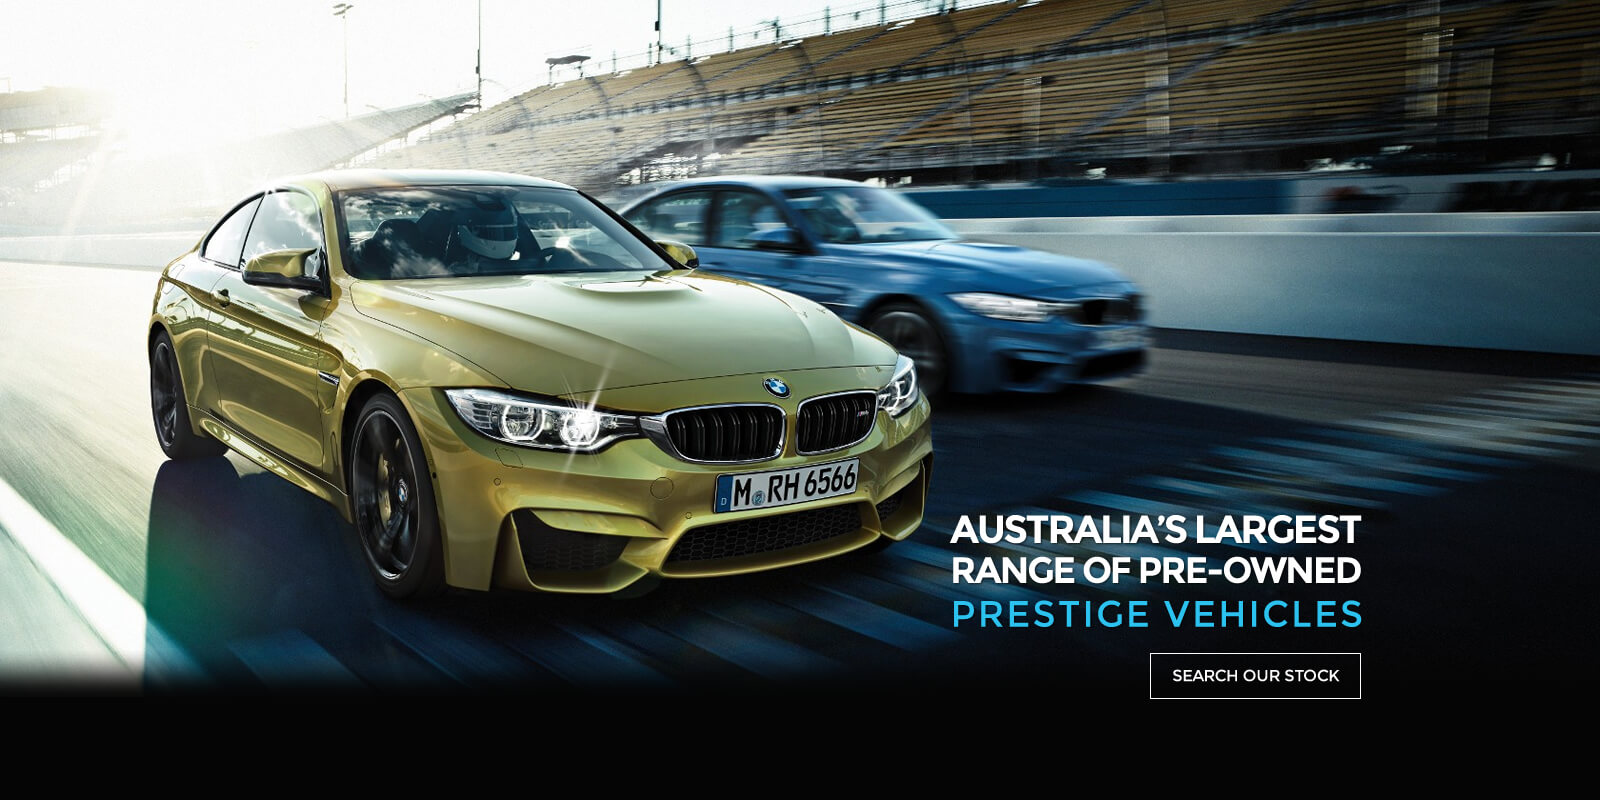 Largest range of pre-owned prestige vehicles